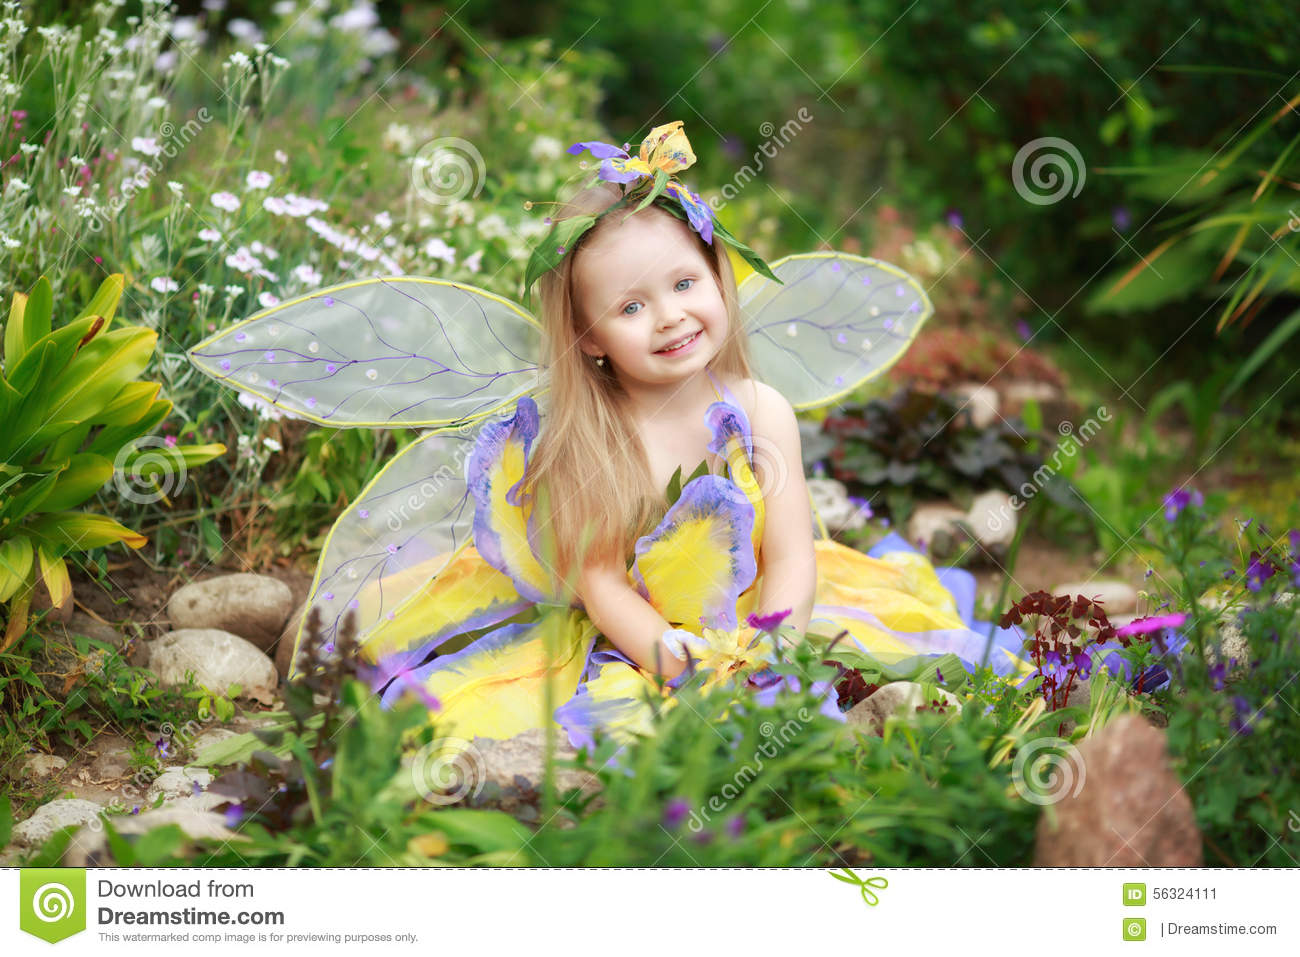 Be Happy Girl Wallpaper Child Girl Dressed As Fairy Stock Photo Image 56324111